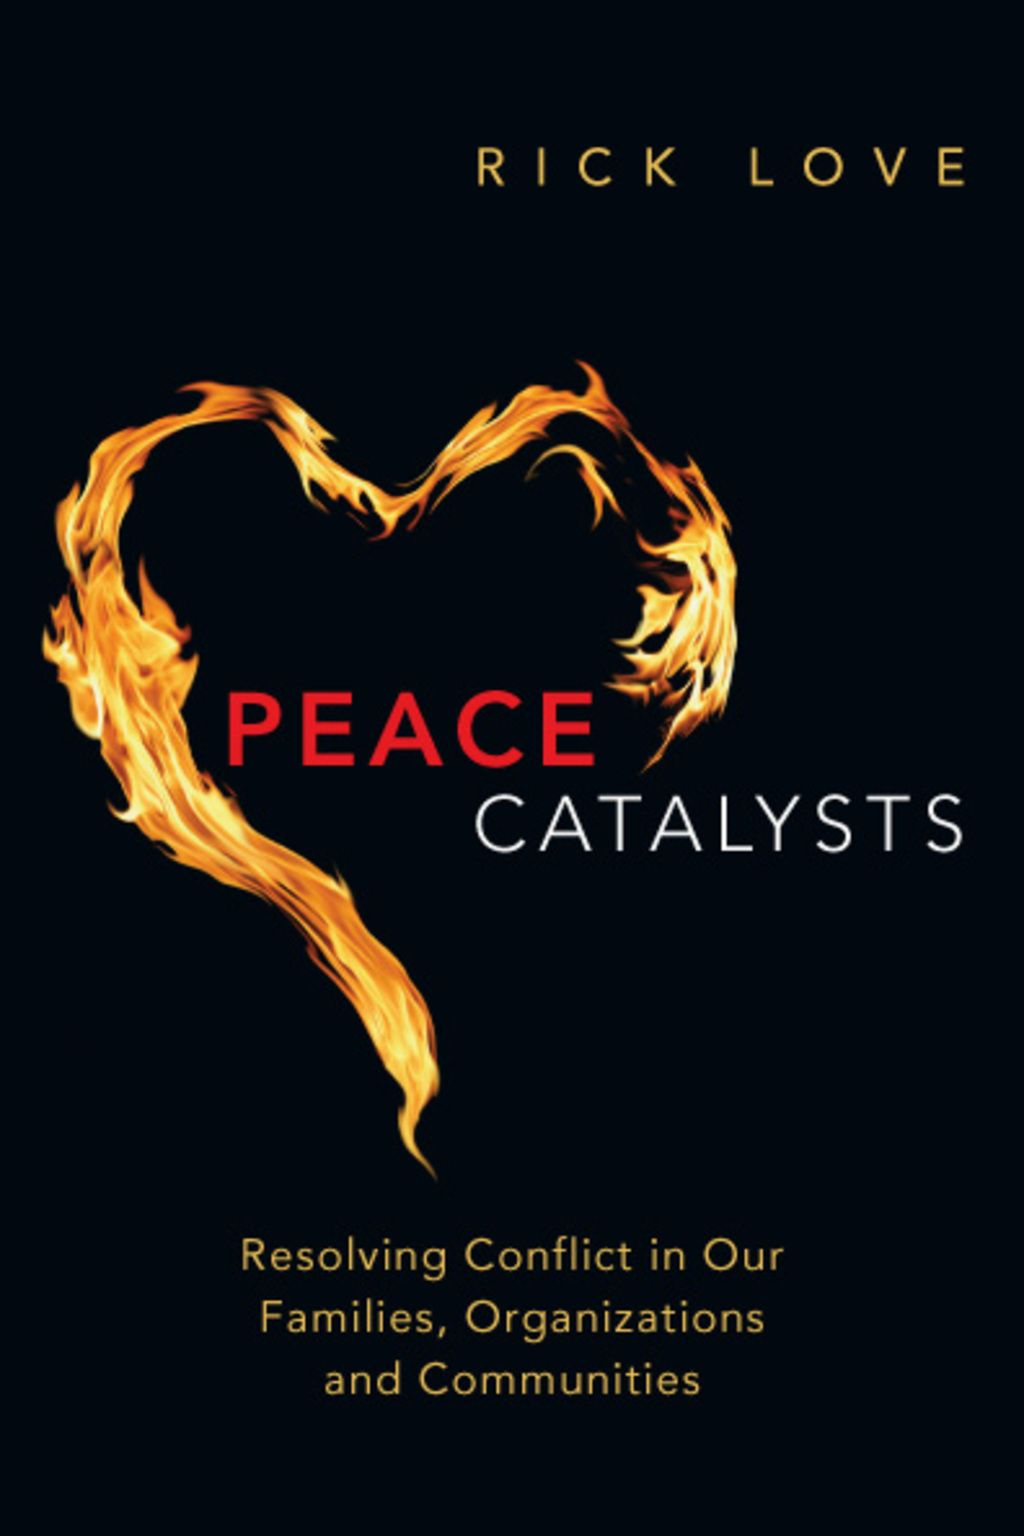 Peace Catalysts Resolving Conflict In Our Families